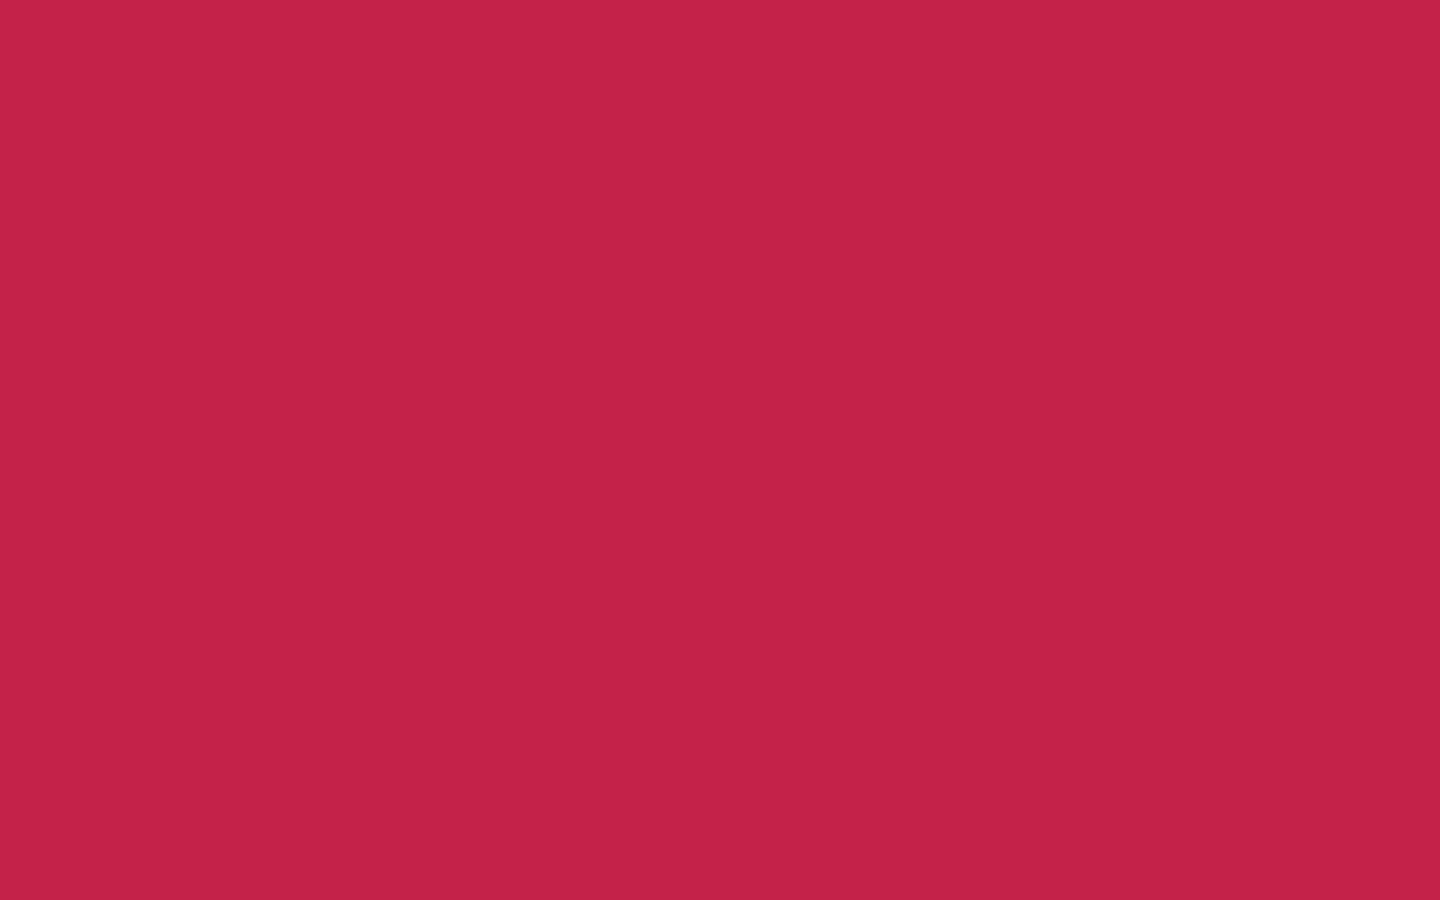 1440x900 Bright Maroon Solid Color Background